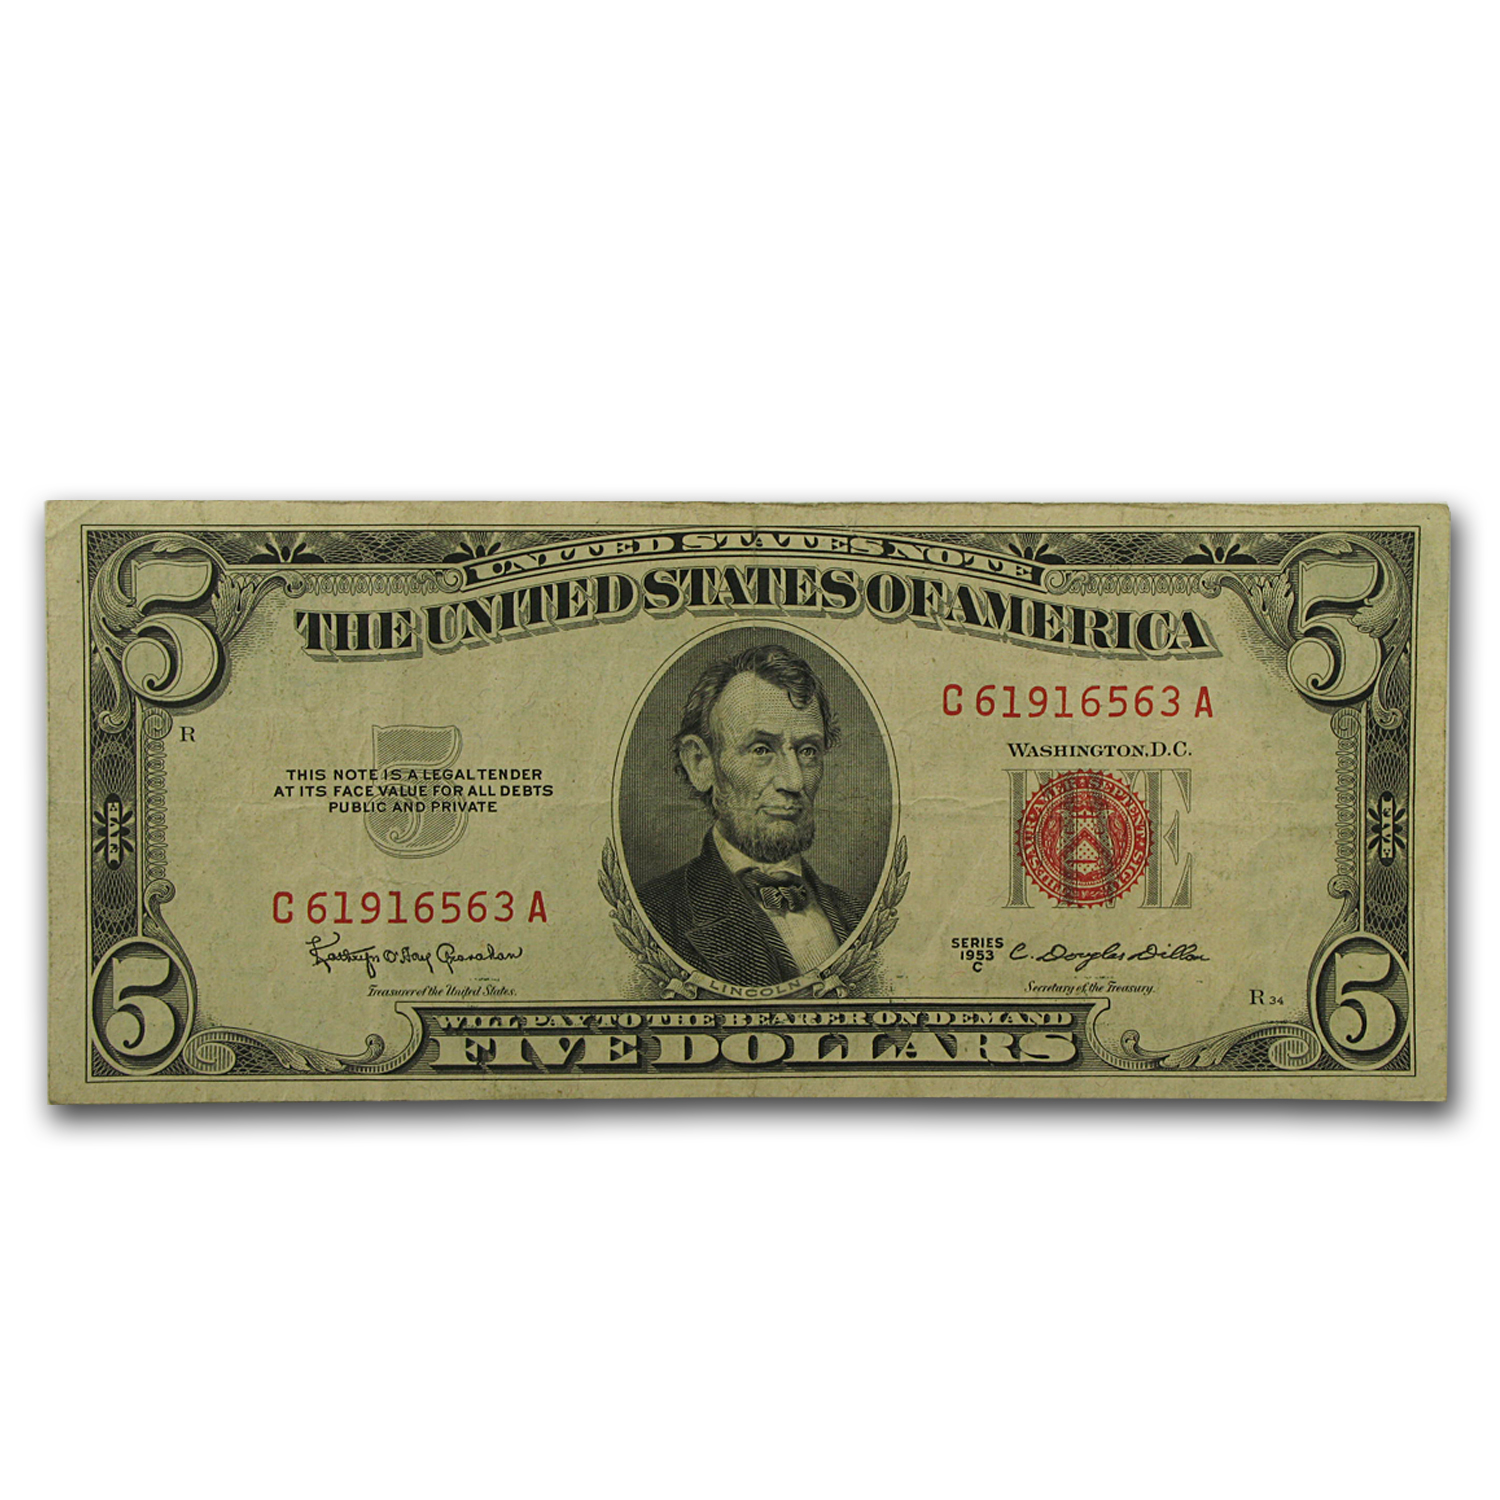 1953 thru 1953-C $5.00 U.S. Note Red Seal VG/VF